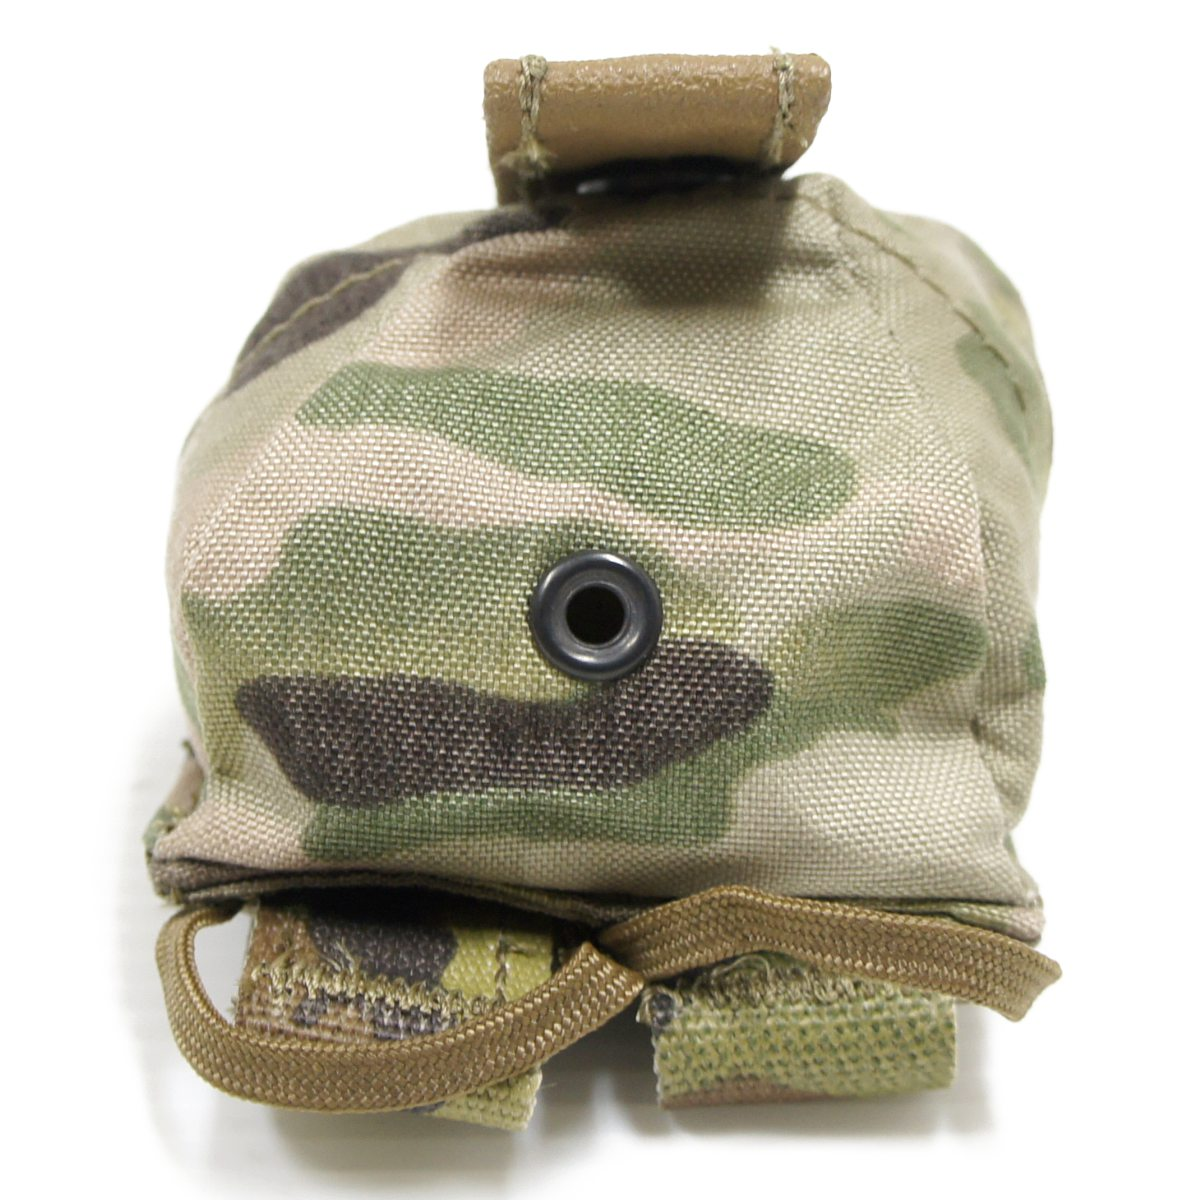 20080345 HIGH GROUND GEAR Instant-Access Frag Grenade Pouch *マルチカム/M67フラッググレネード1個収納